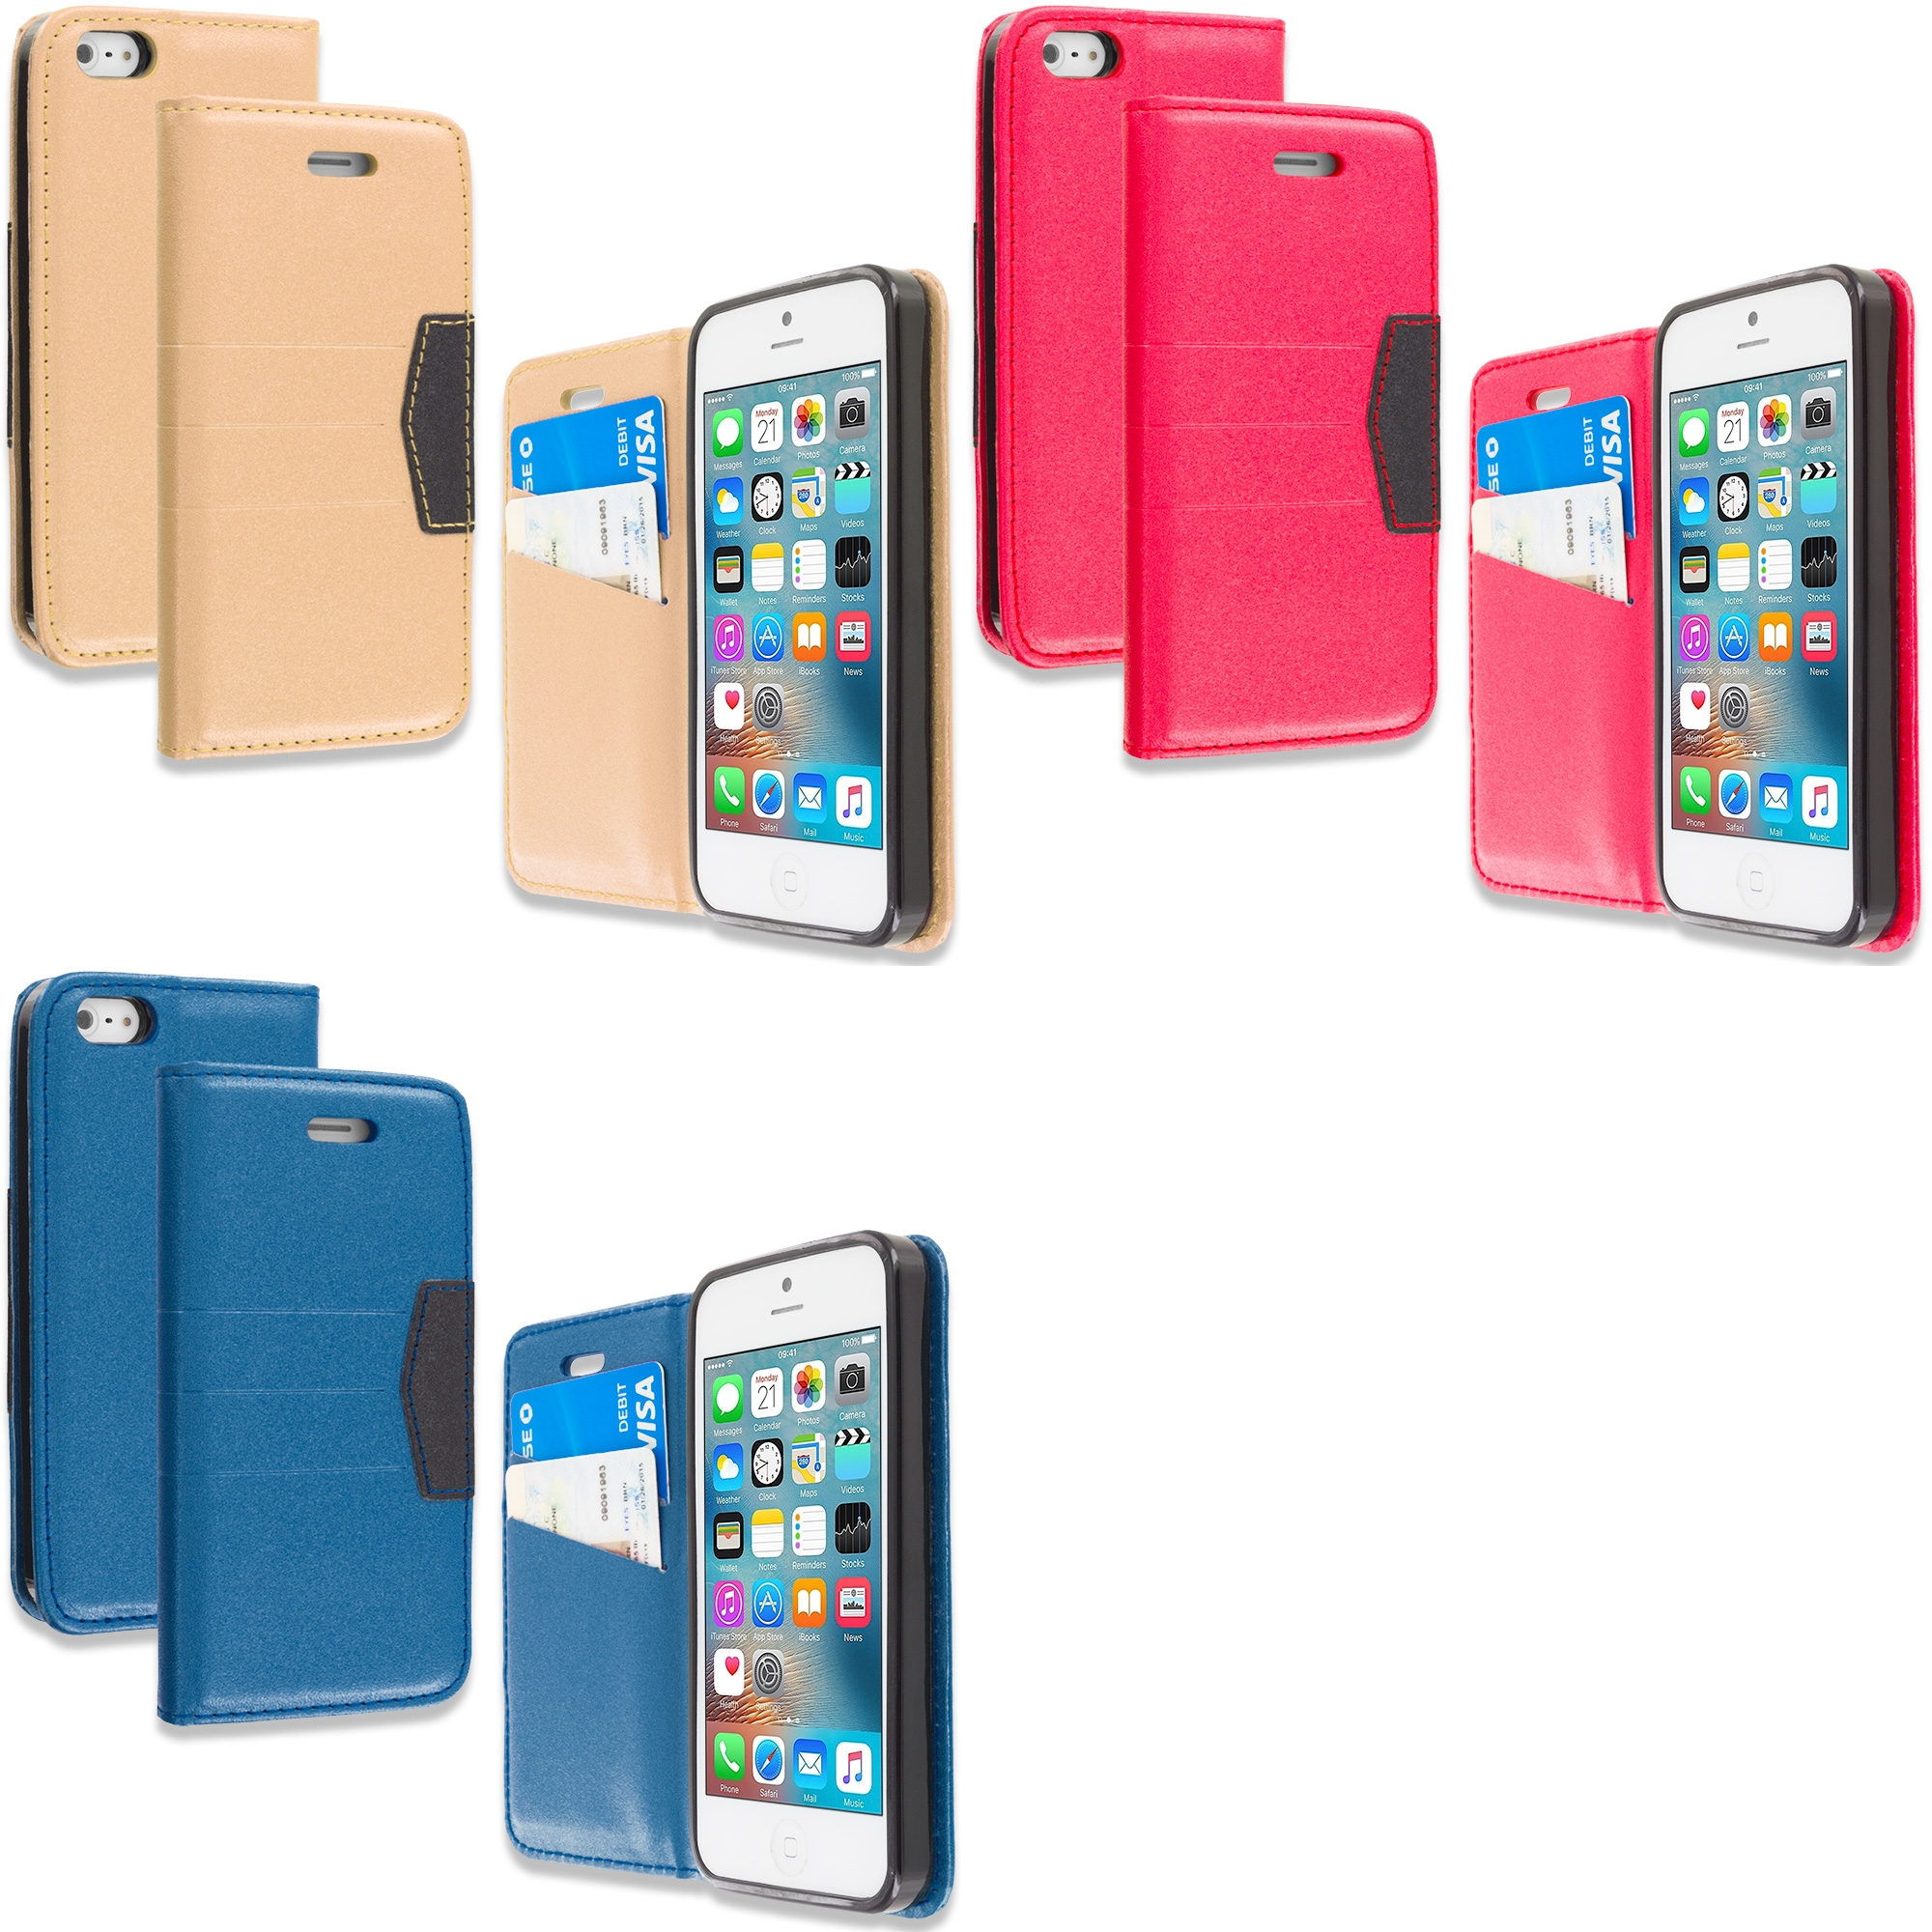 Apple iPhone 5/5S/SE Combo Pack : Gold Wallet Flip Leather Pouch Case Cover with ID Card Slots